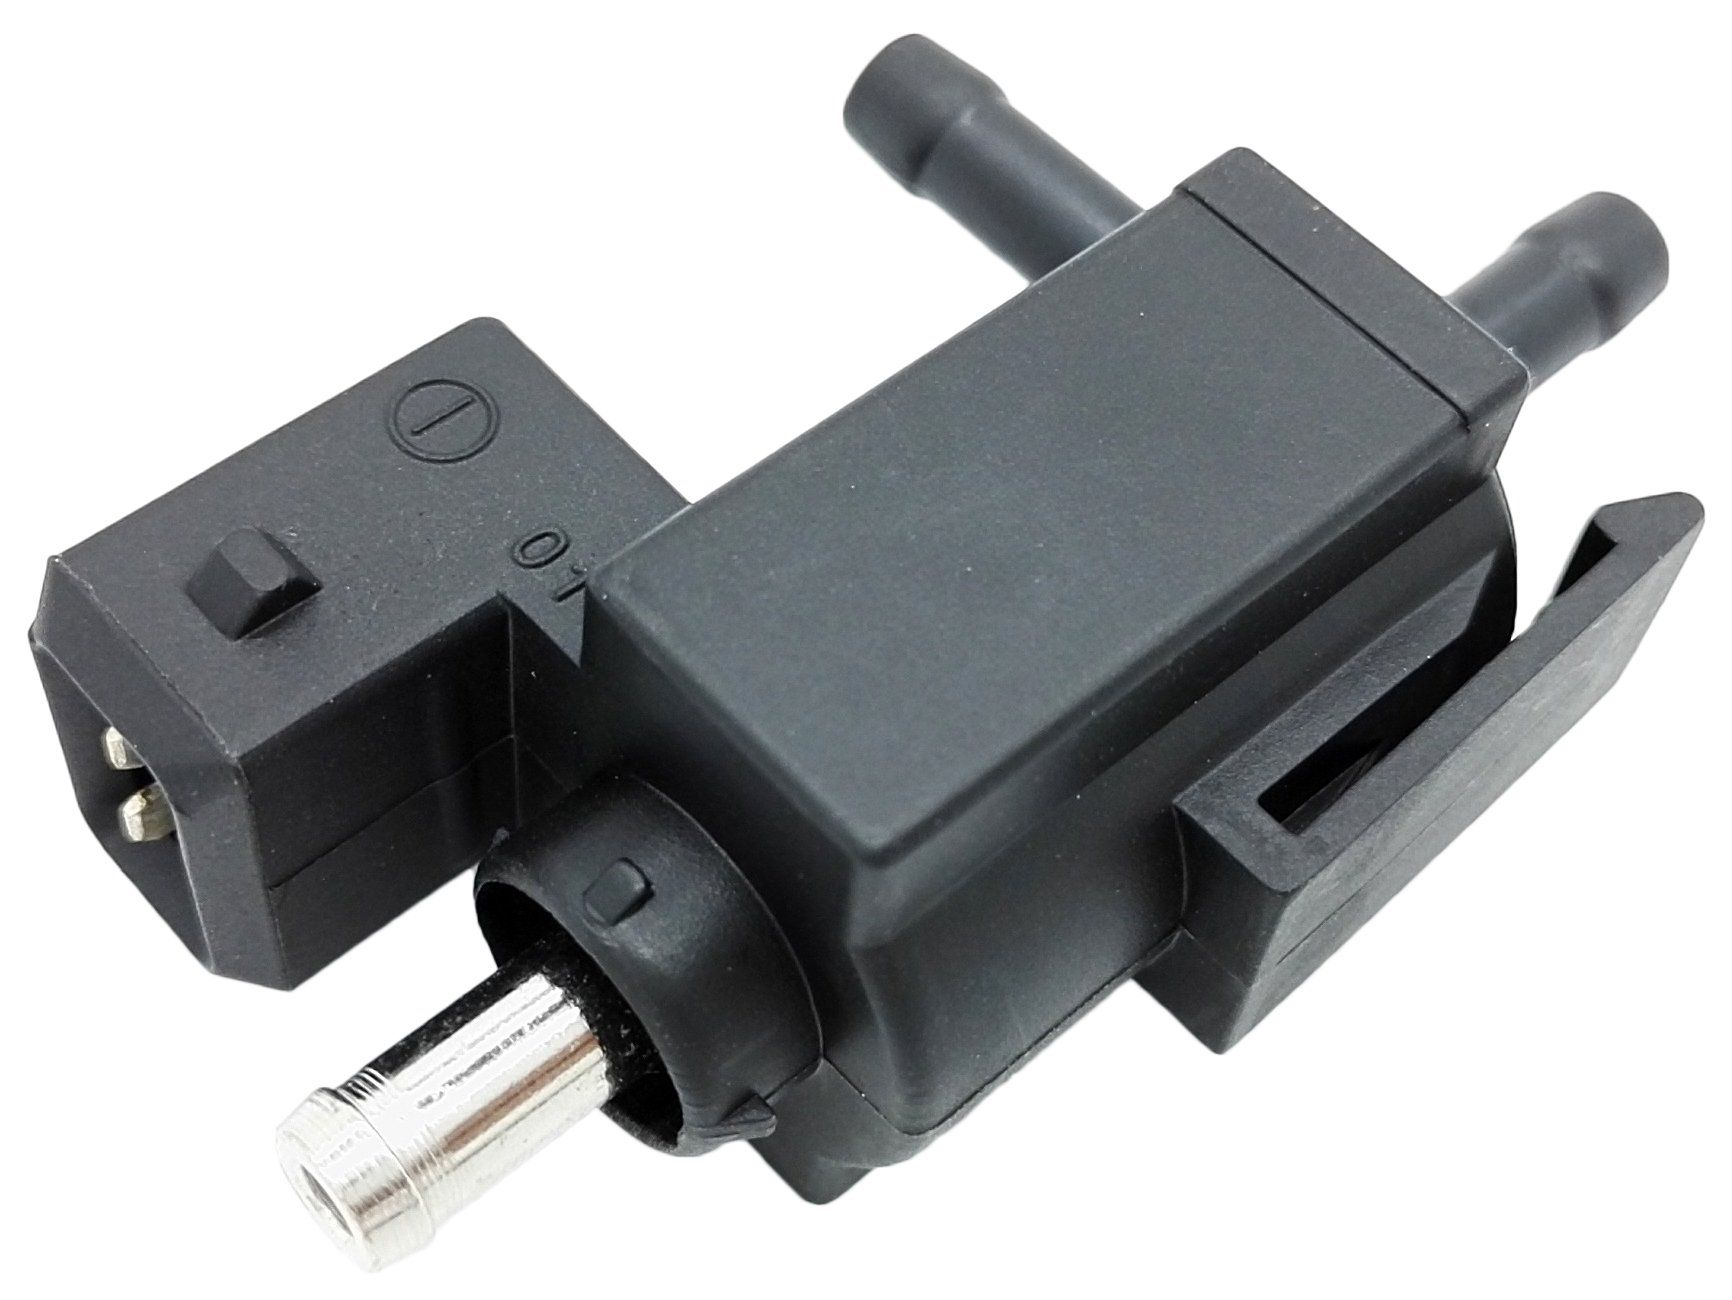 Turbocharger Boost Control Valve for Saab 9-3 9-5 Cadillac SRX -- Awesome products selected by Anna Churchill